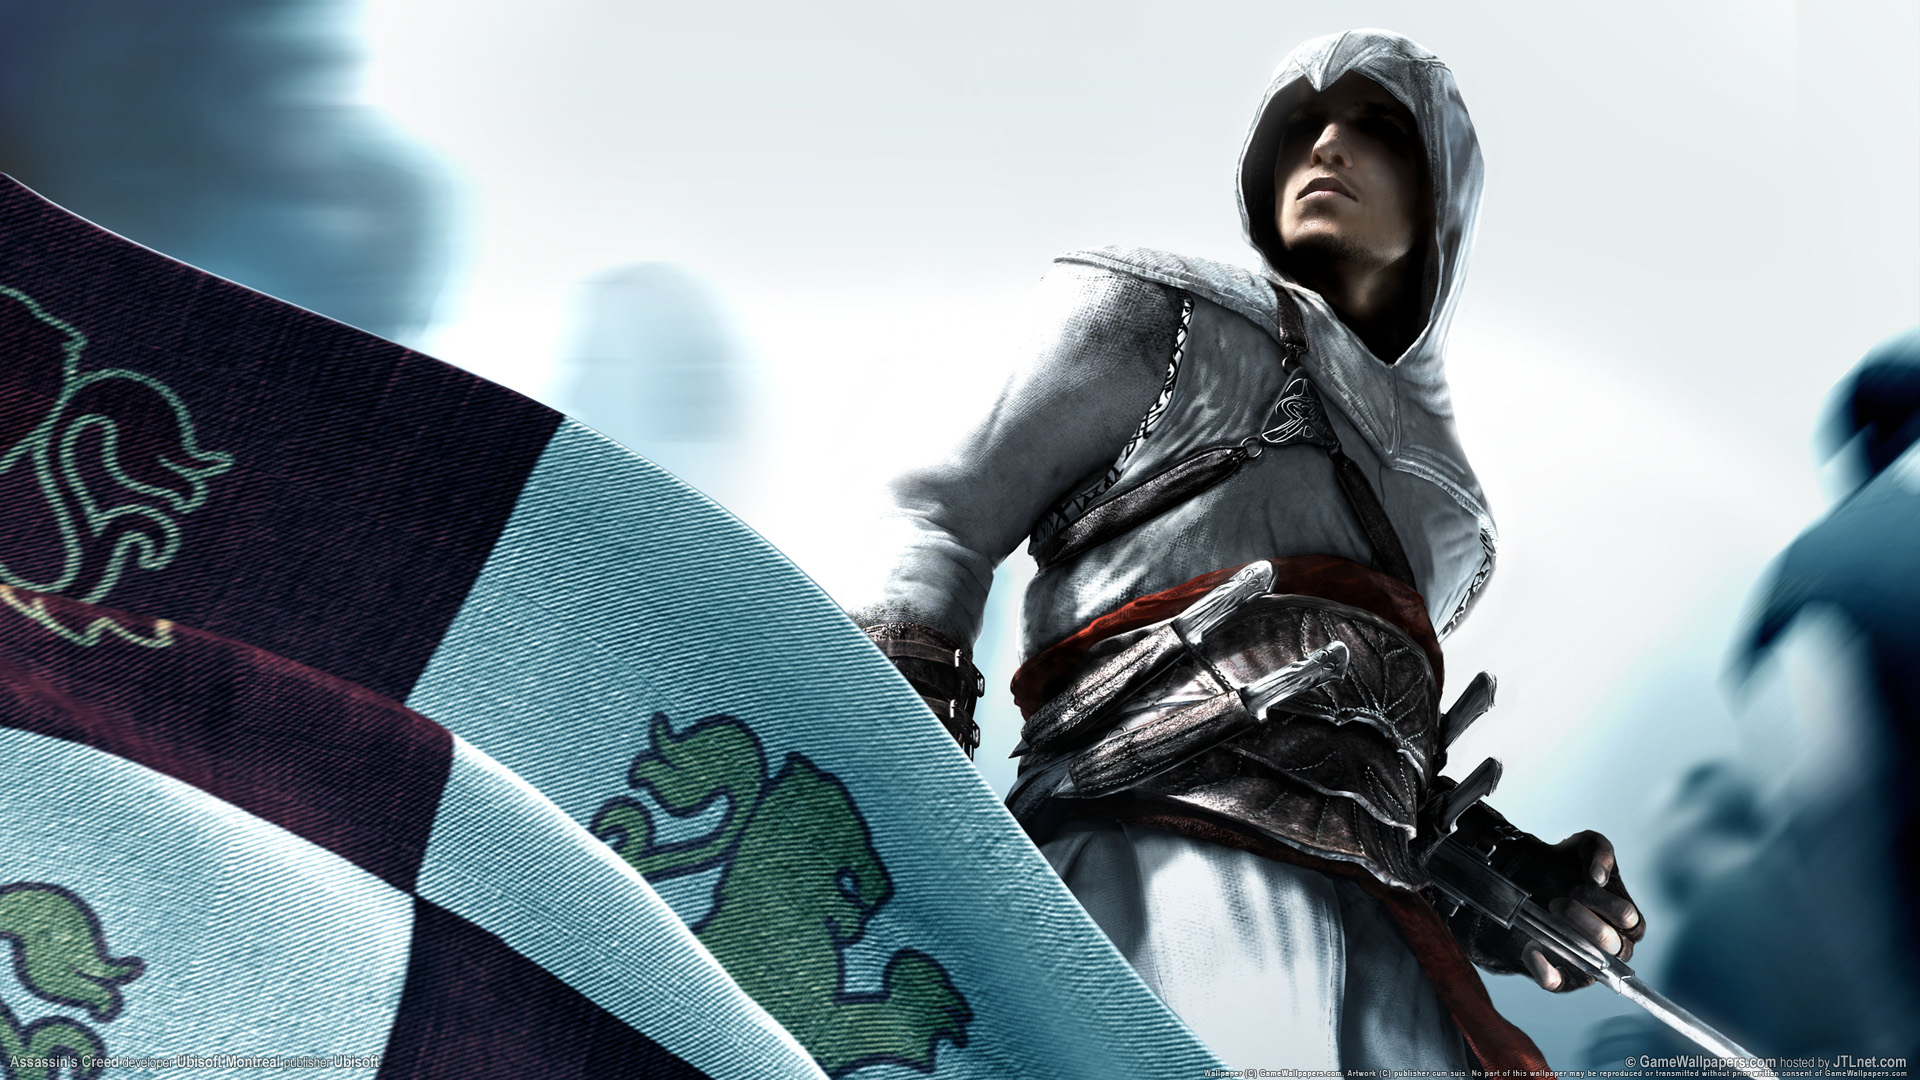 Assassins Creed 1080p Wallpapers HD Wallpapers 1920x1080